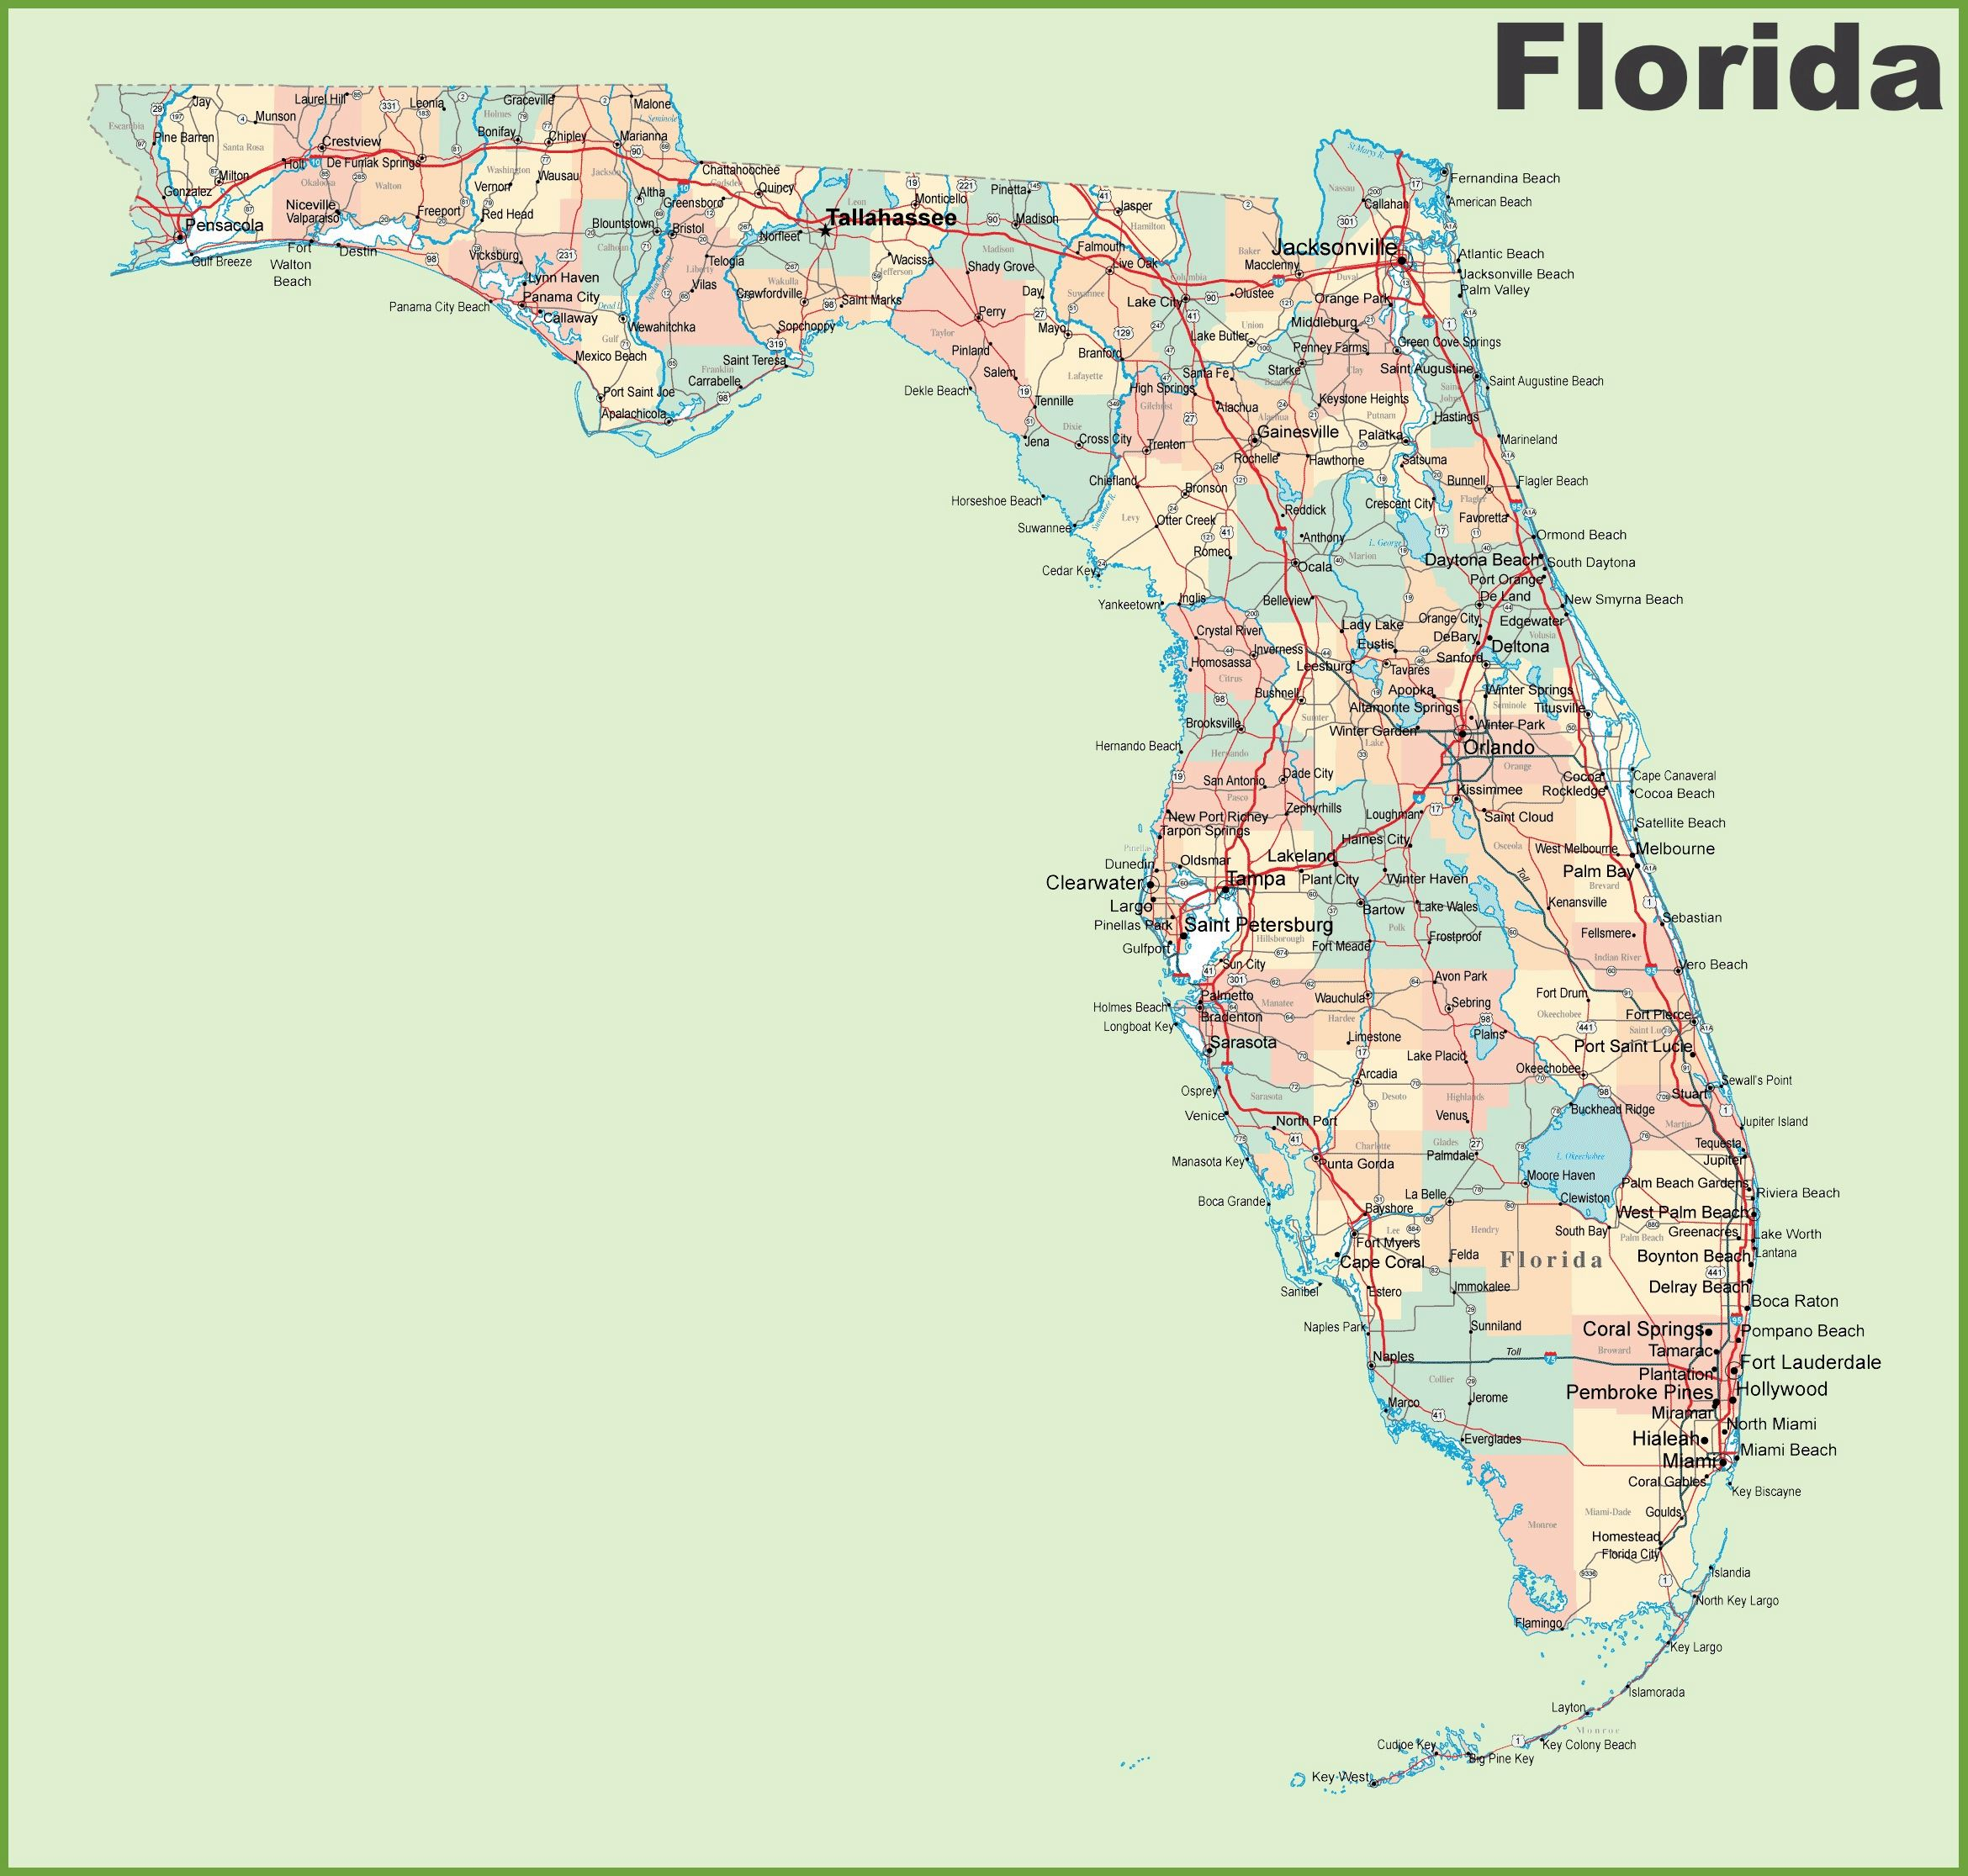 Large Florida Maps For Free Download And Print | High-Resolution And - Map Of Sw Florida Cities